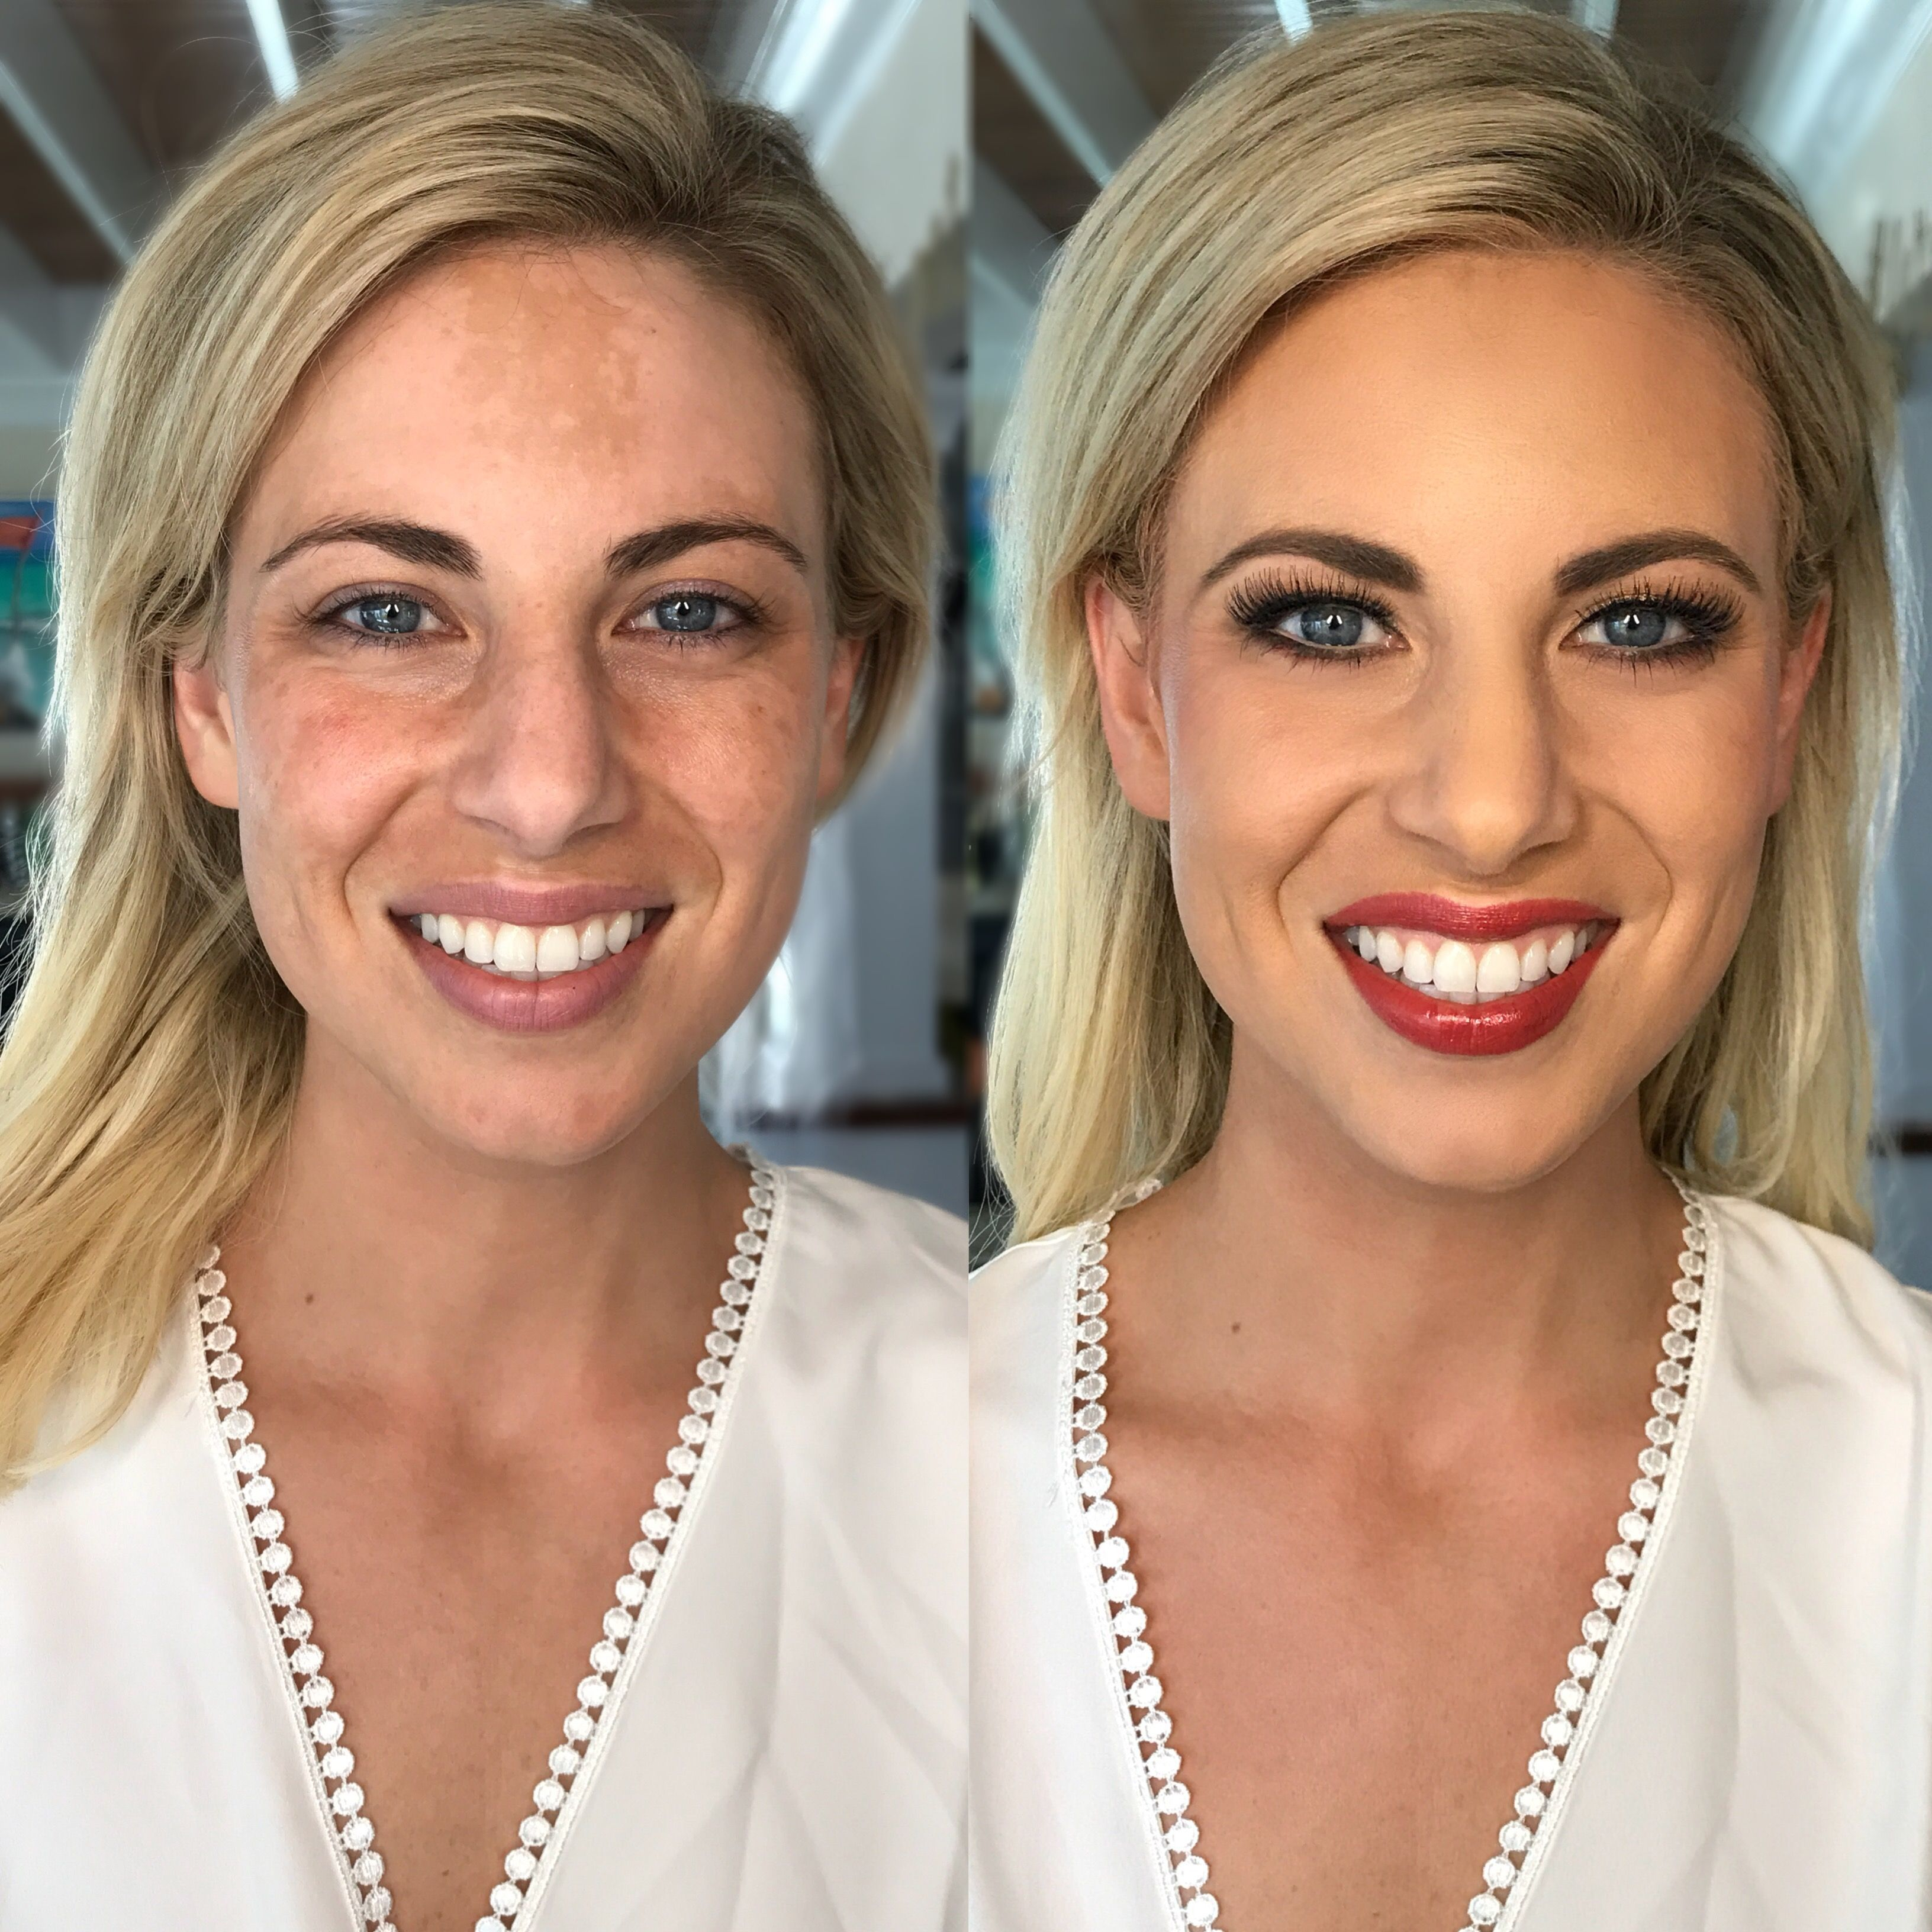 Before and after airbrush color correction makeup vitiligo